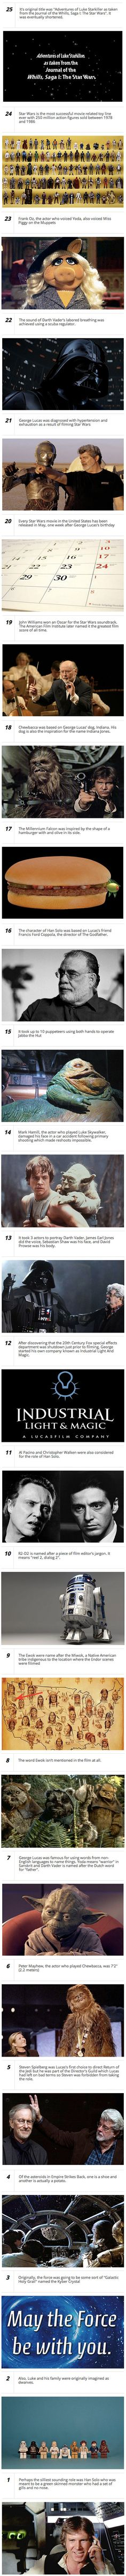 Here are 25 interesting things you may not have known about Star Wars.